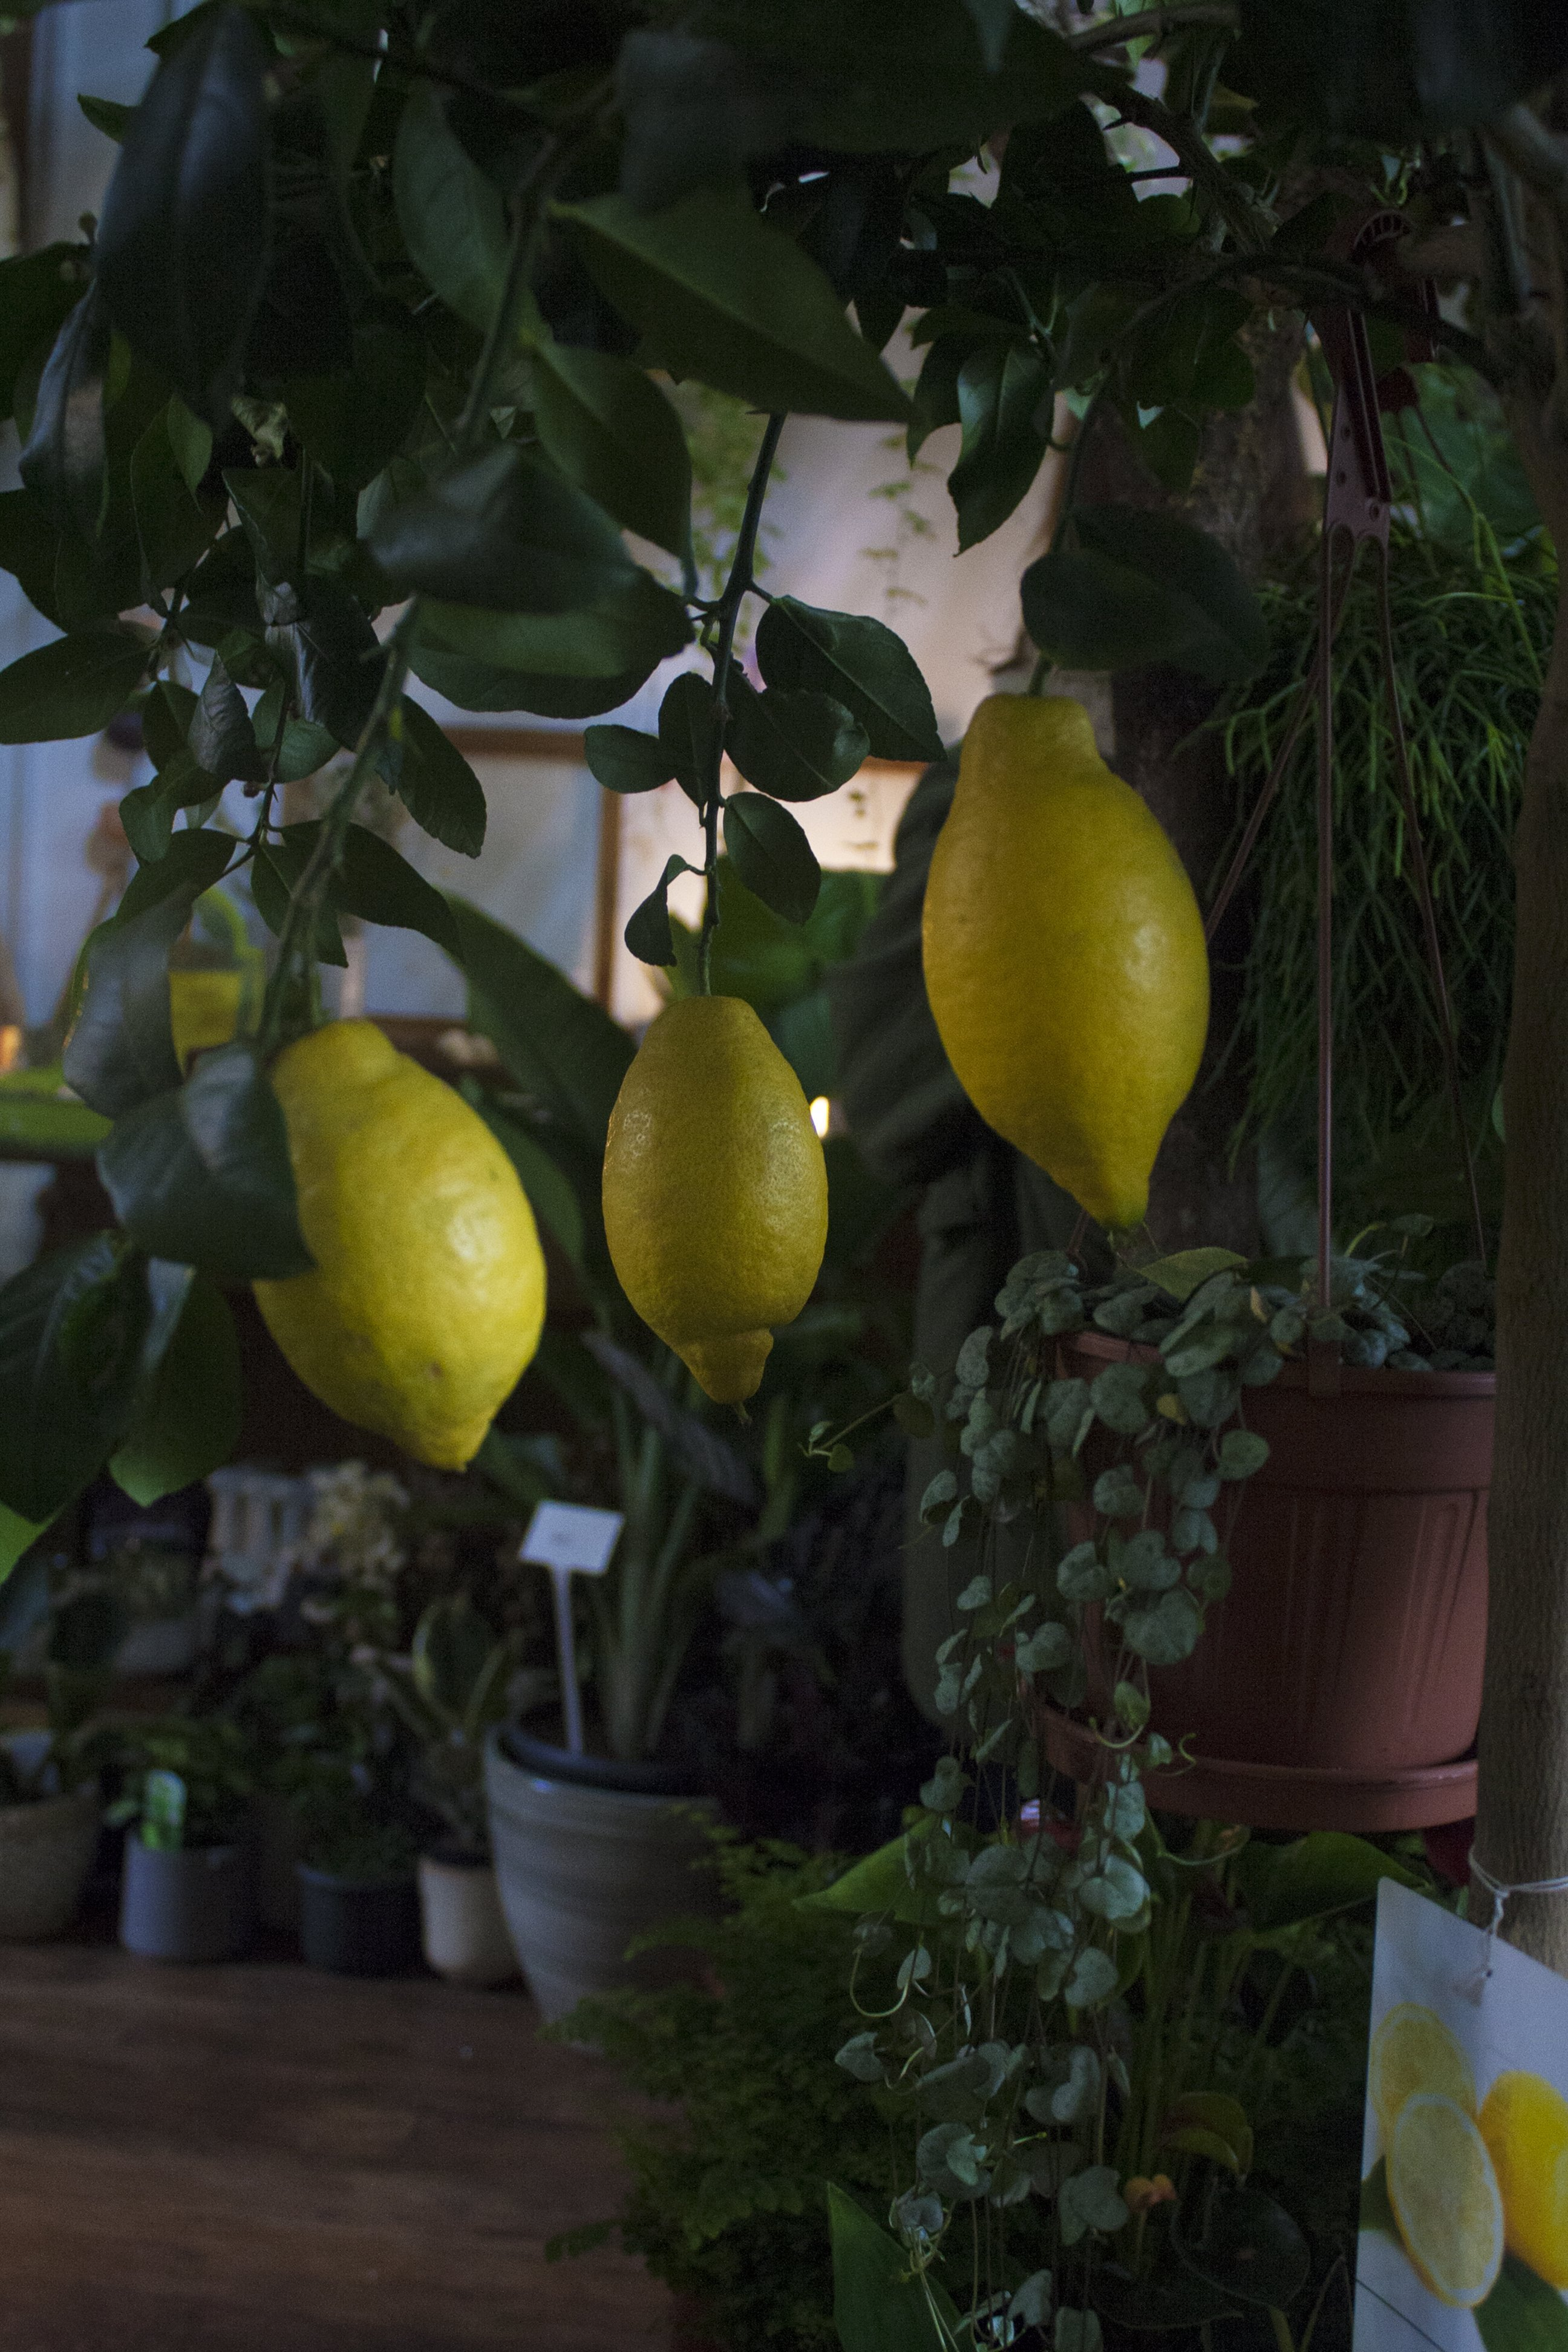 Lemons growing on a lemon tree at Conservatory Archives, Hackney